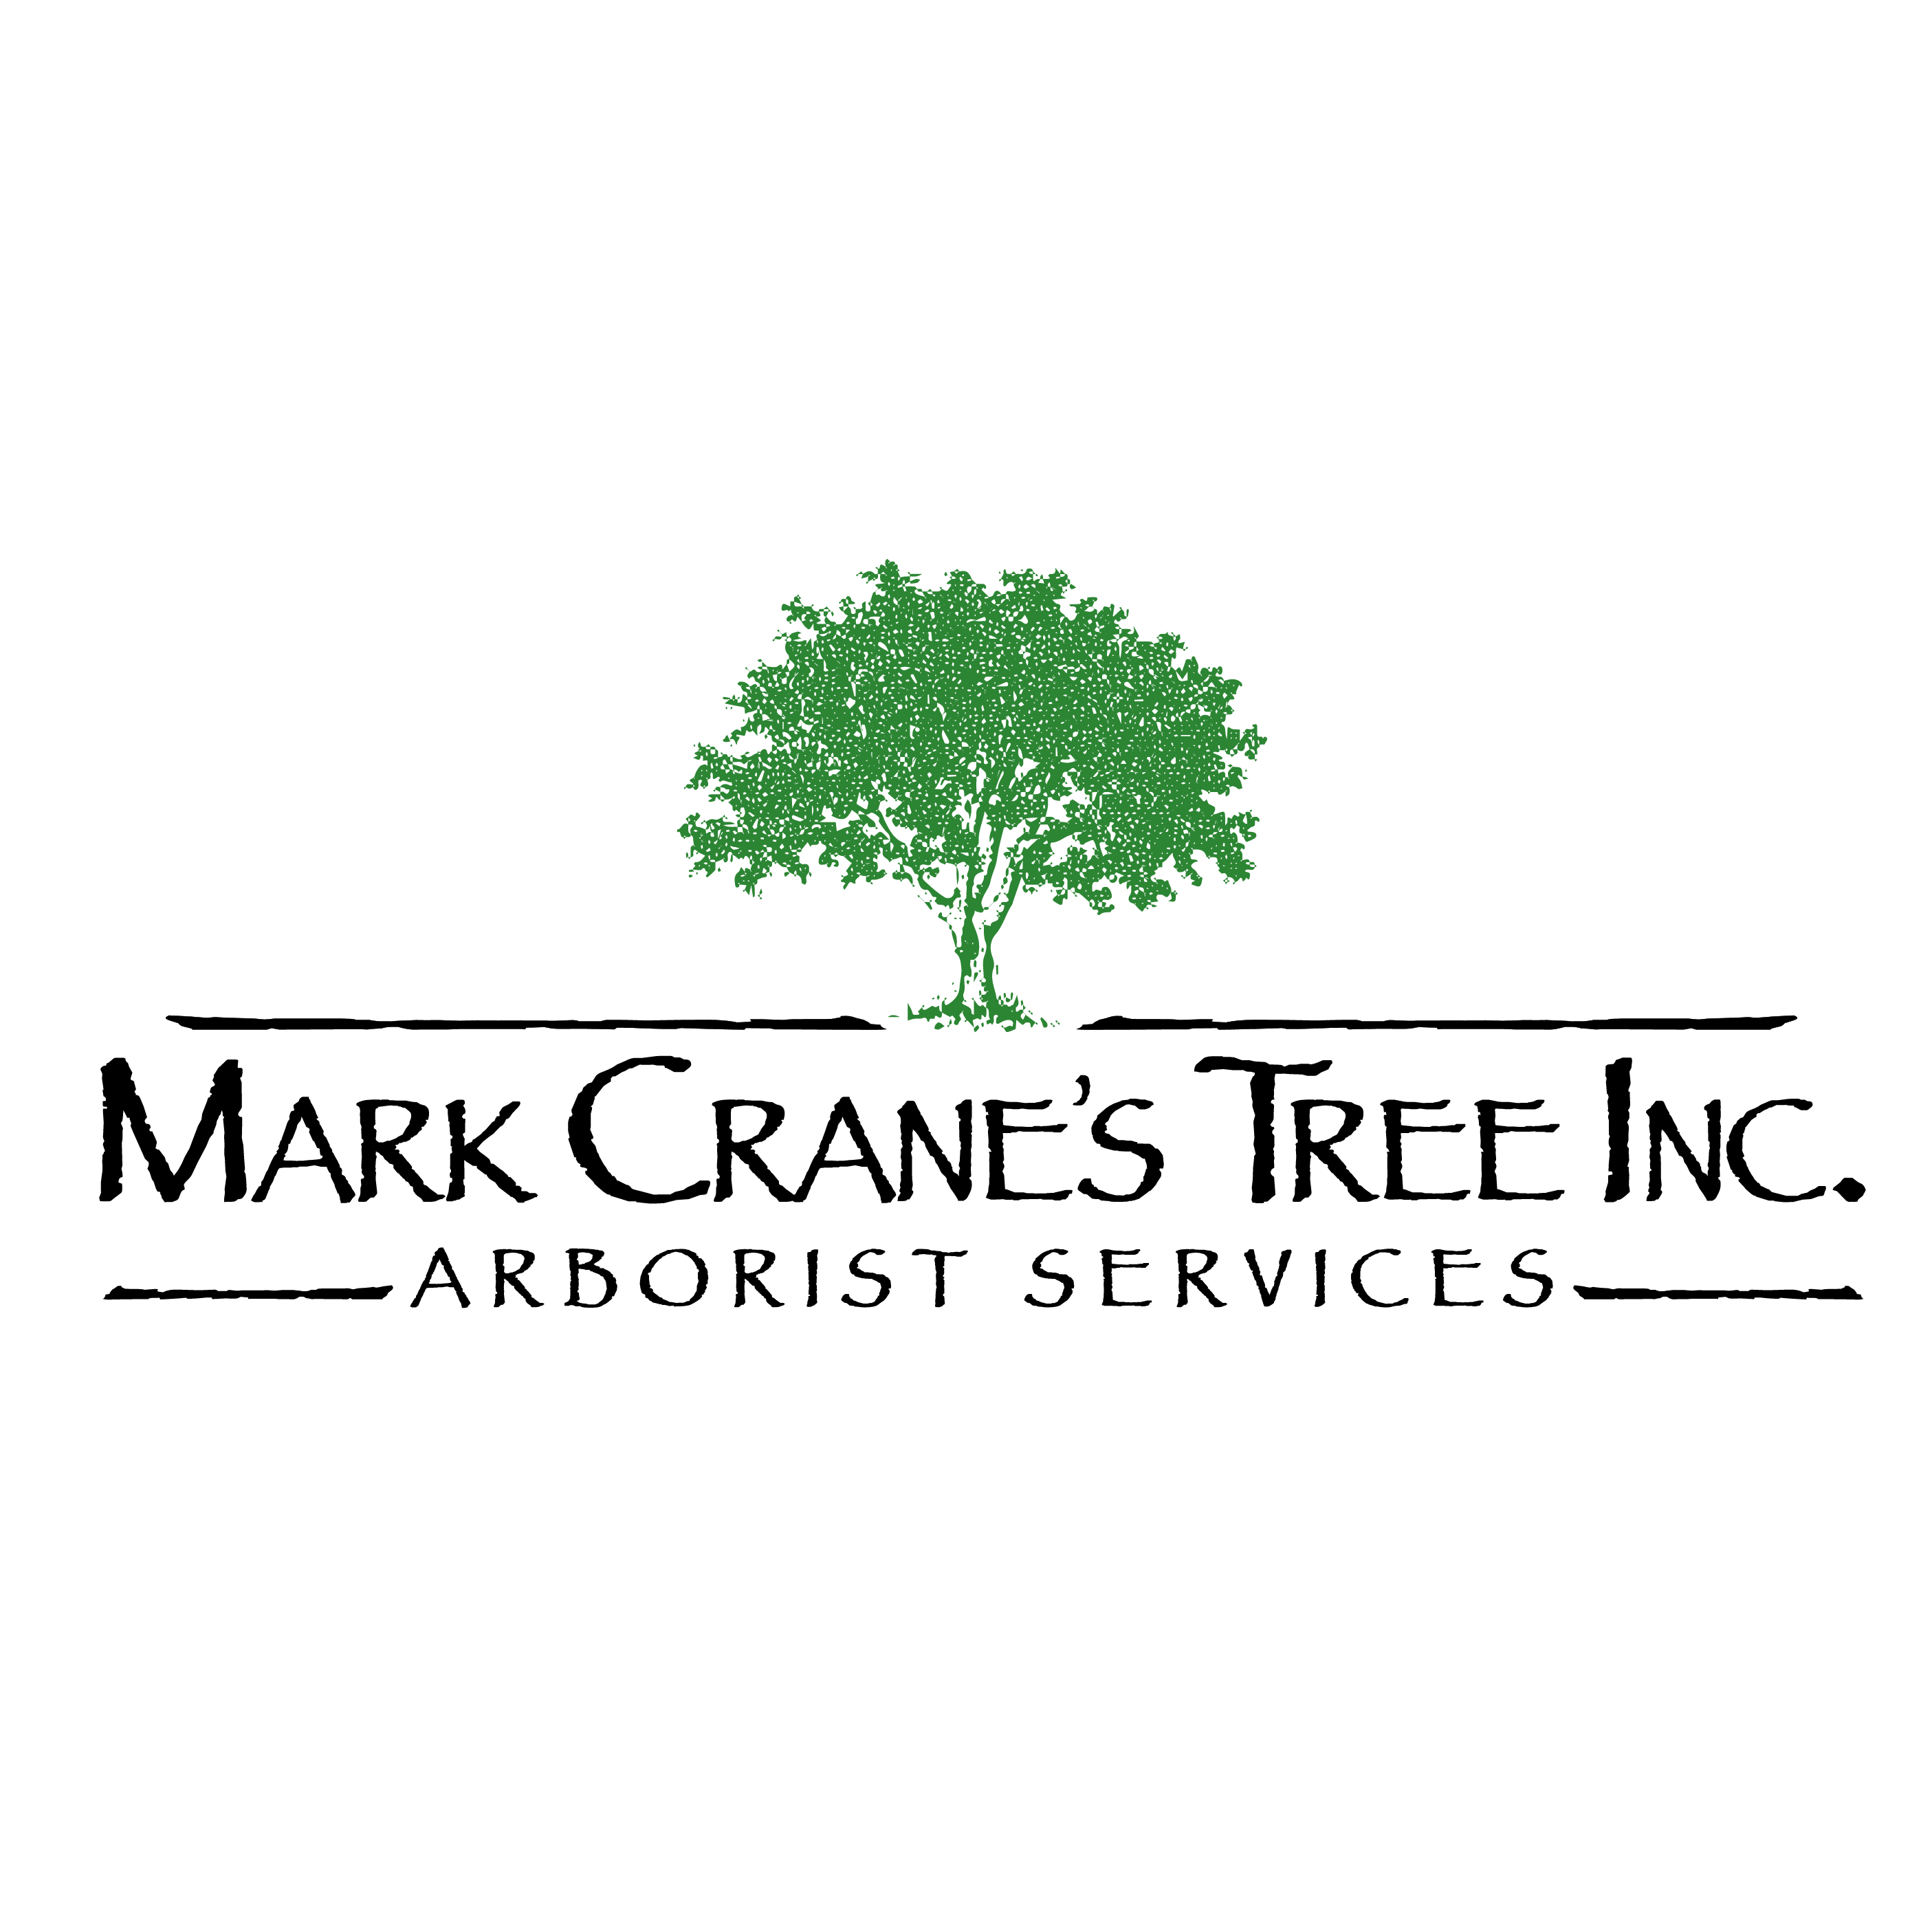 Mark Crane's Tree & Arborist Services